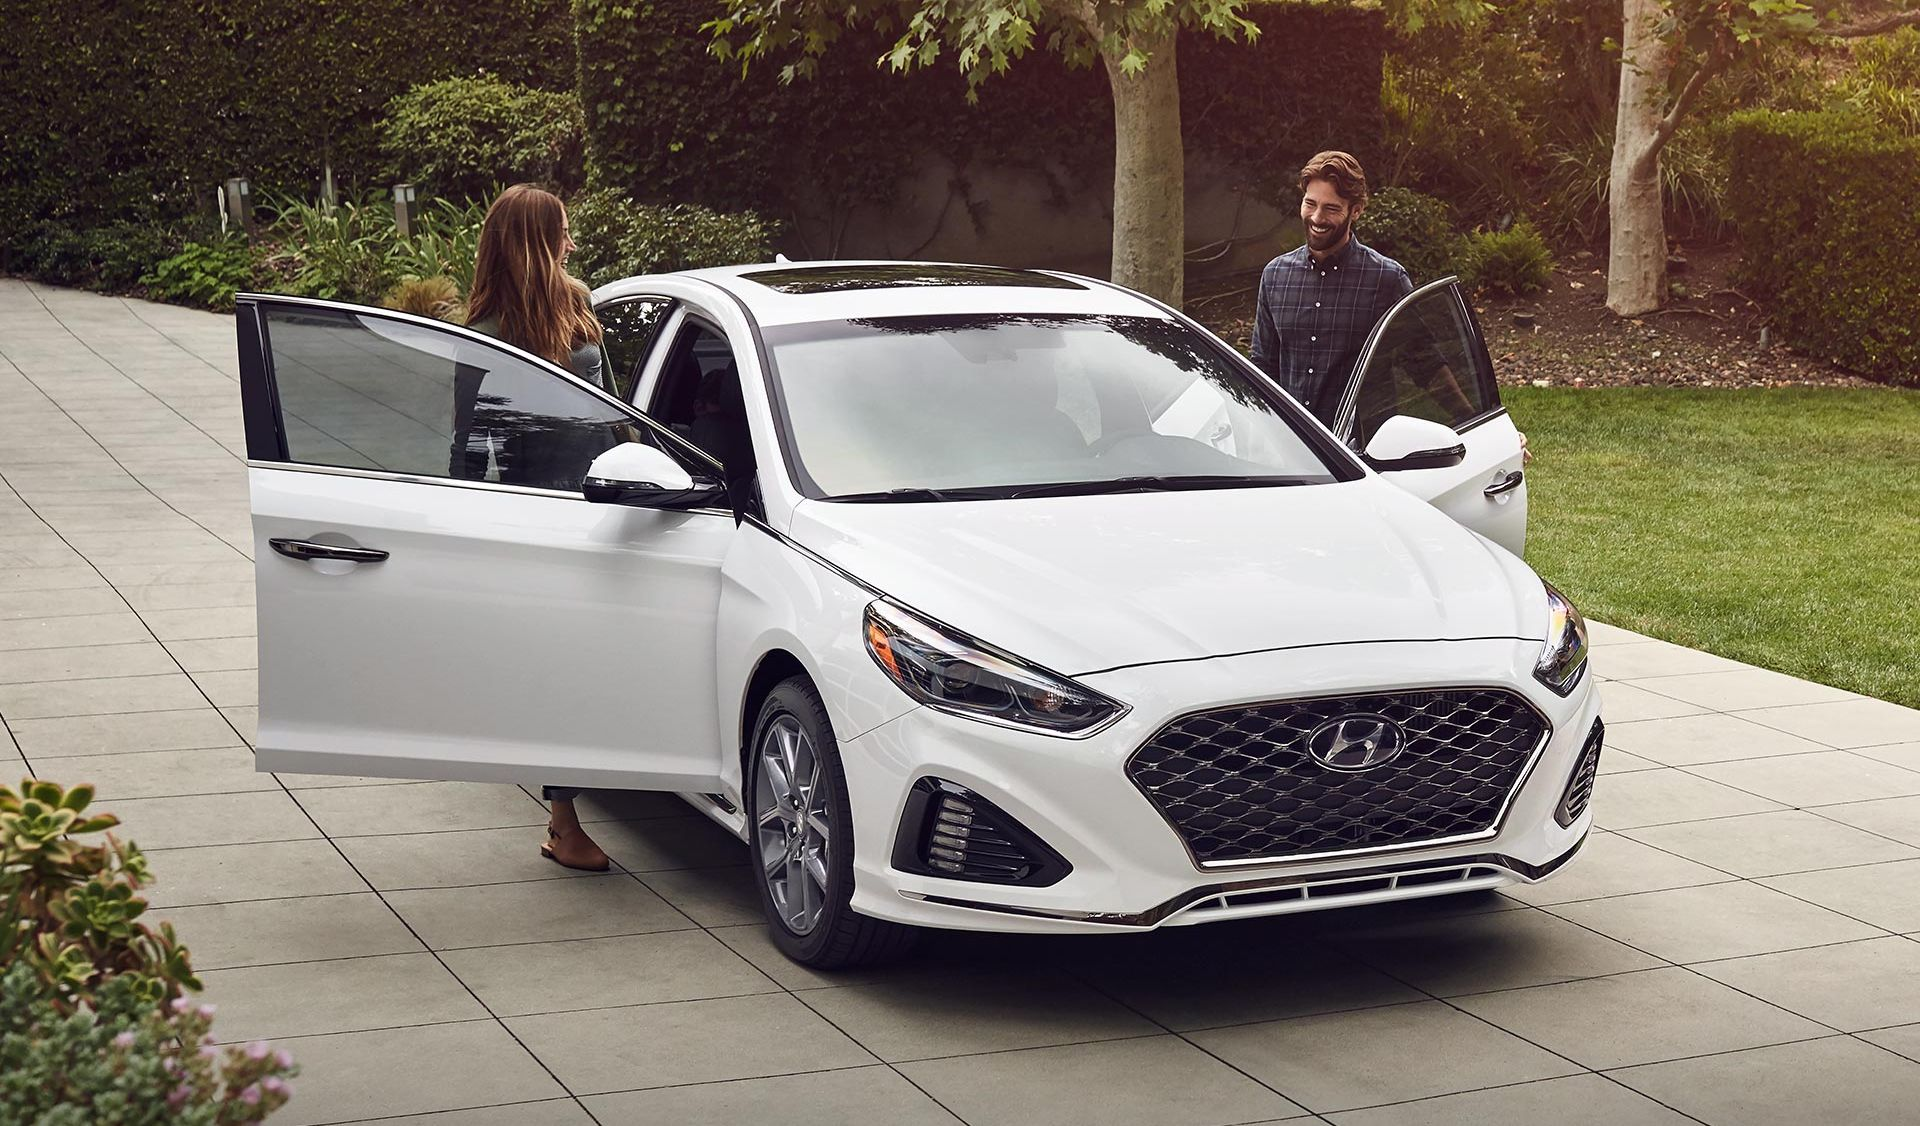 2019 Hyundai Sonata Leasing near Washington, DC